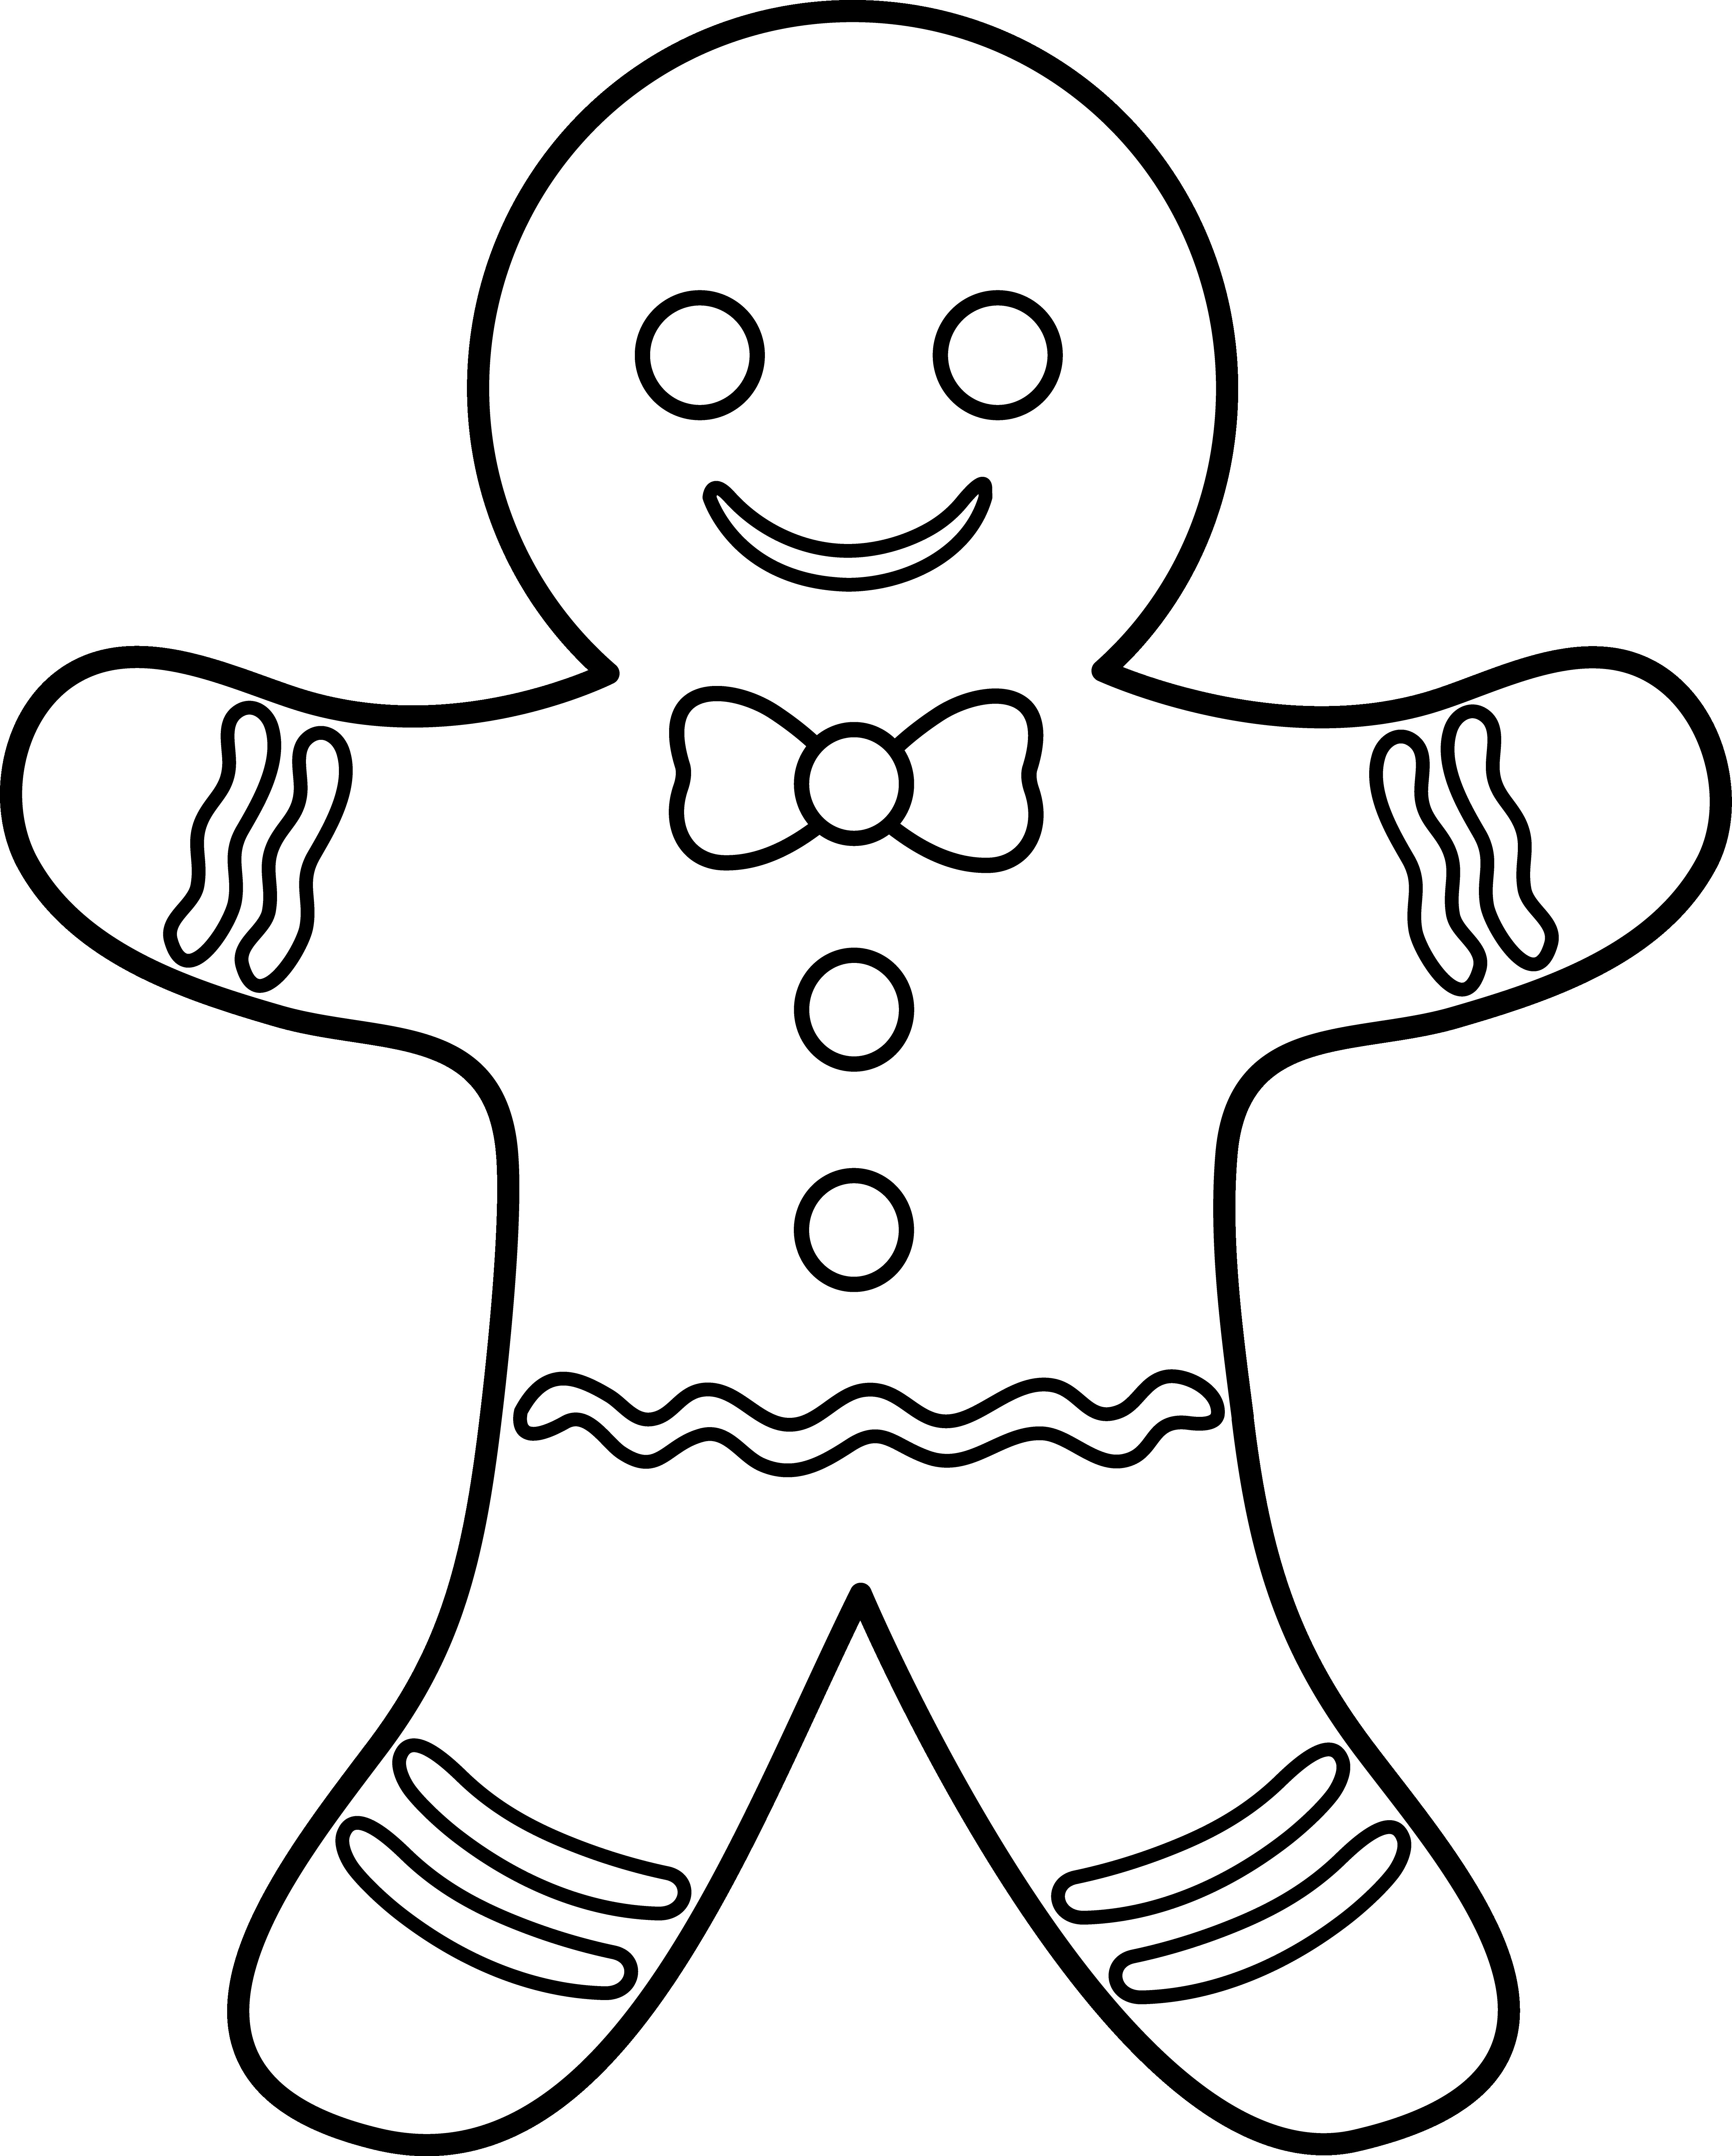 Christmas Coloring Sheets Gingerbread Man With Best